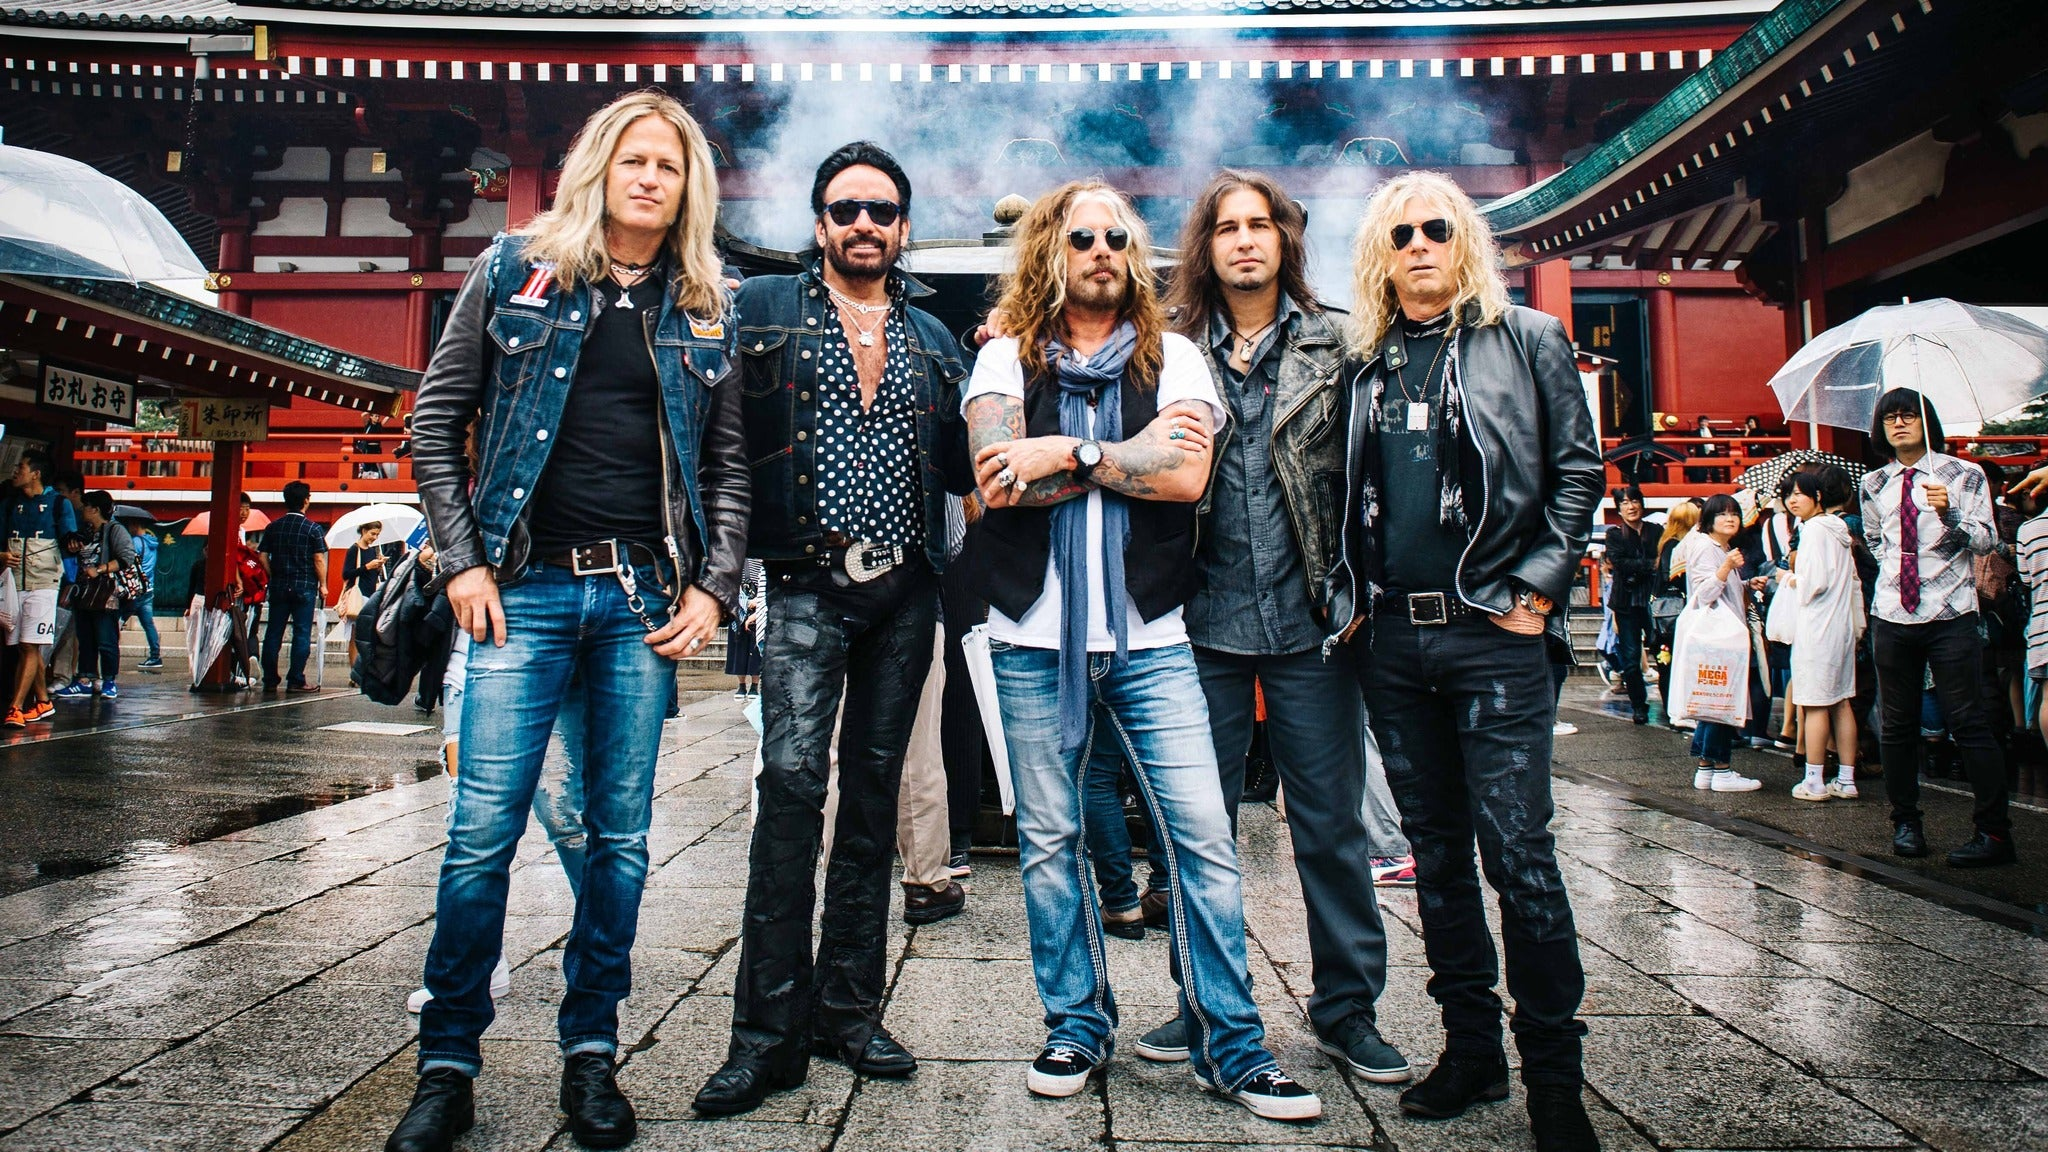 101.5 KGB Presents The Dead Daisies